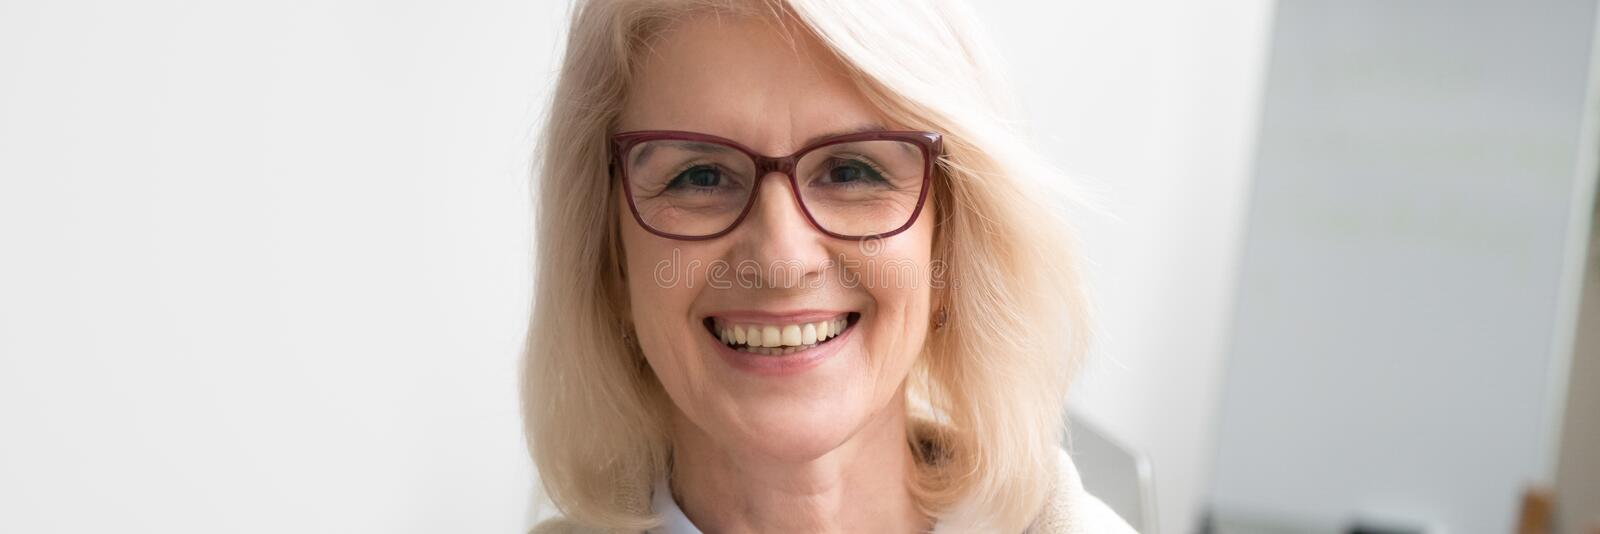 Horizontal image face of aged businesswoman smiling looking at camera stock photo